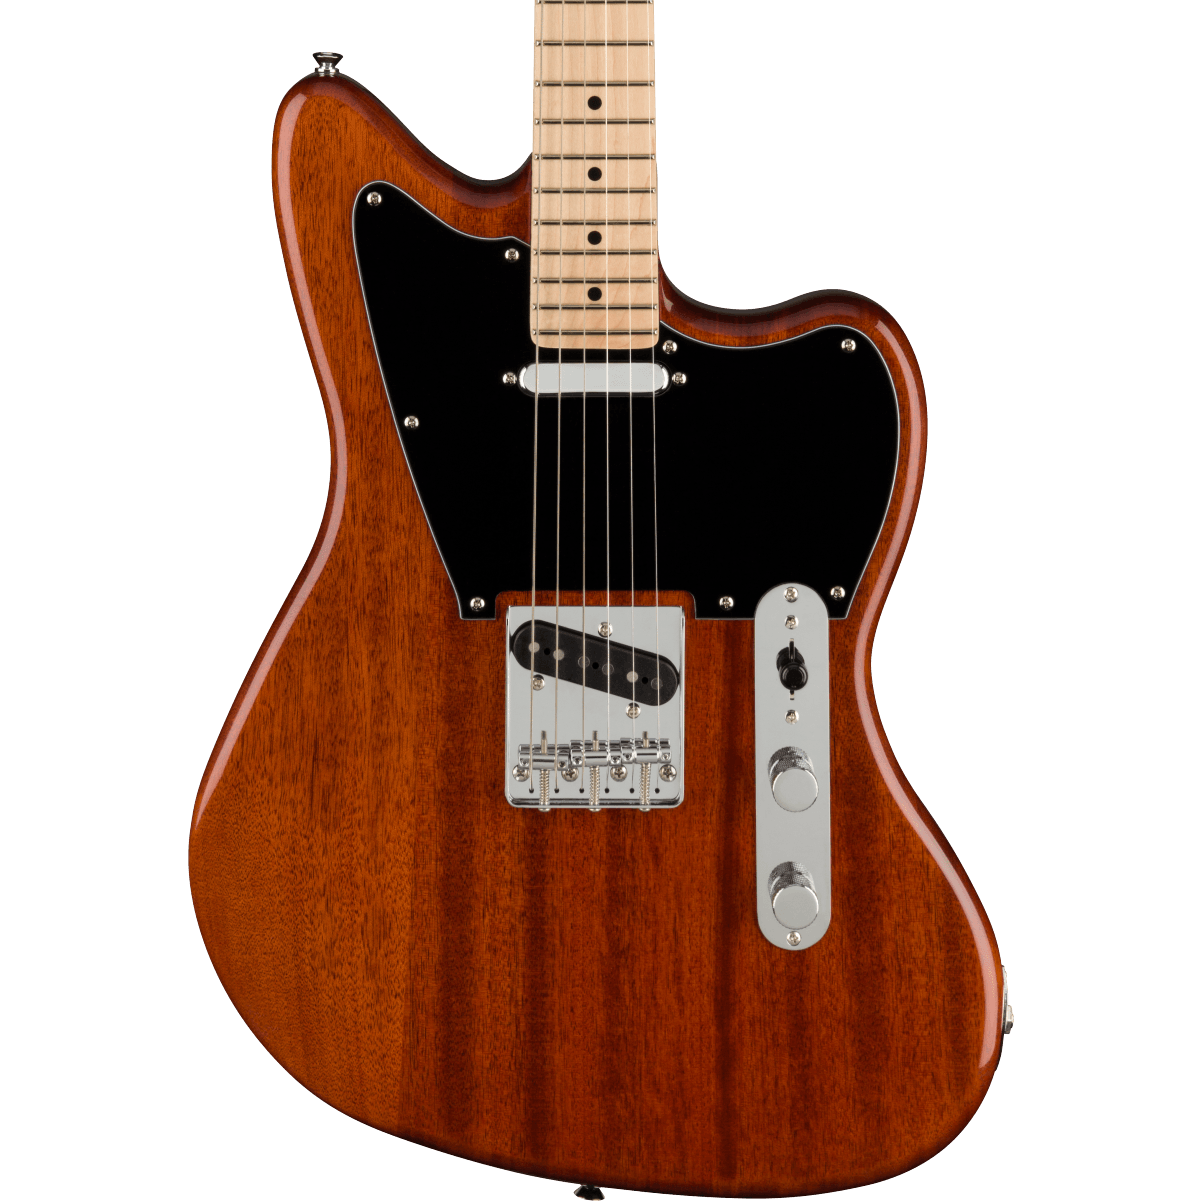 Squier Paranormal Offset Telecaster - Maple Fingerboard, Natural